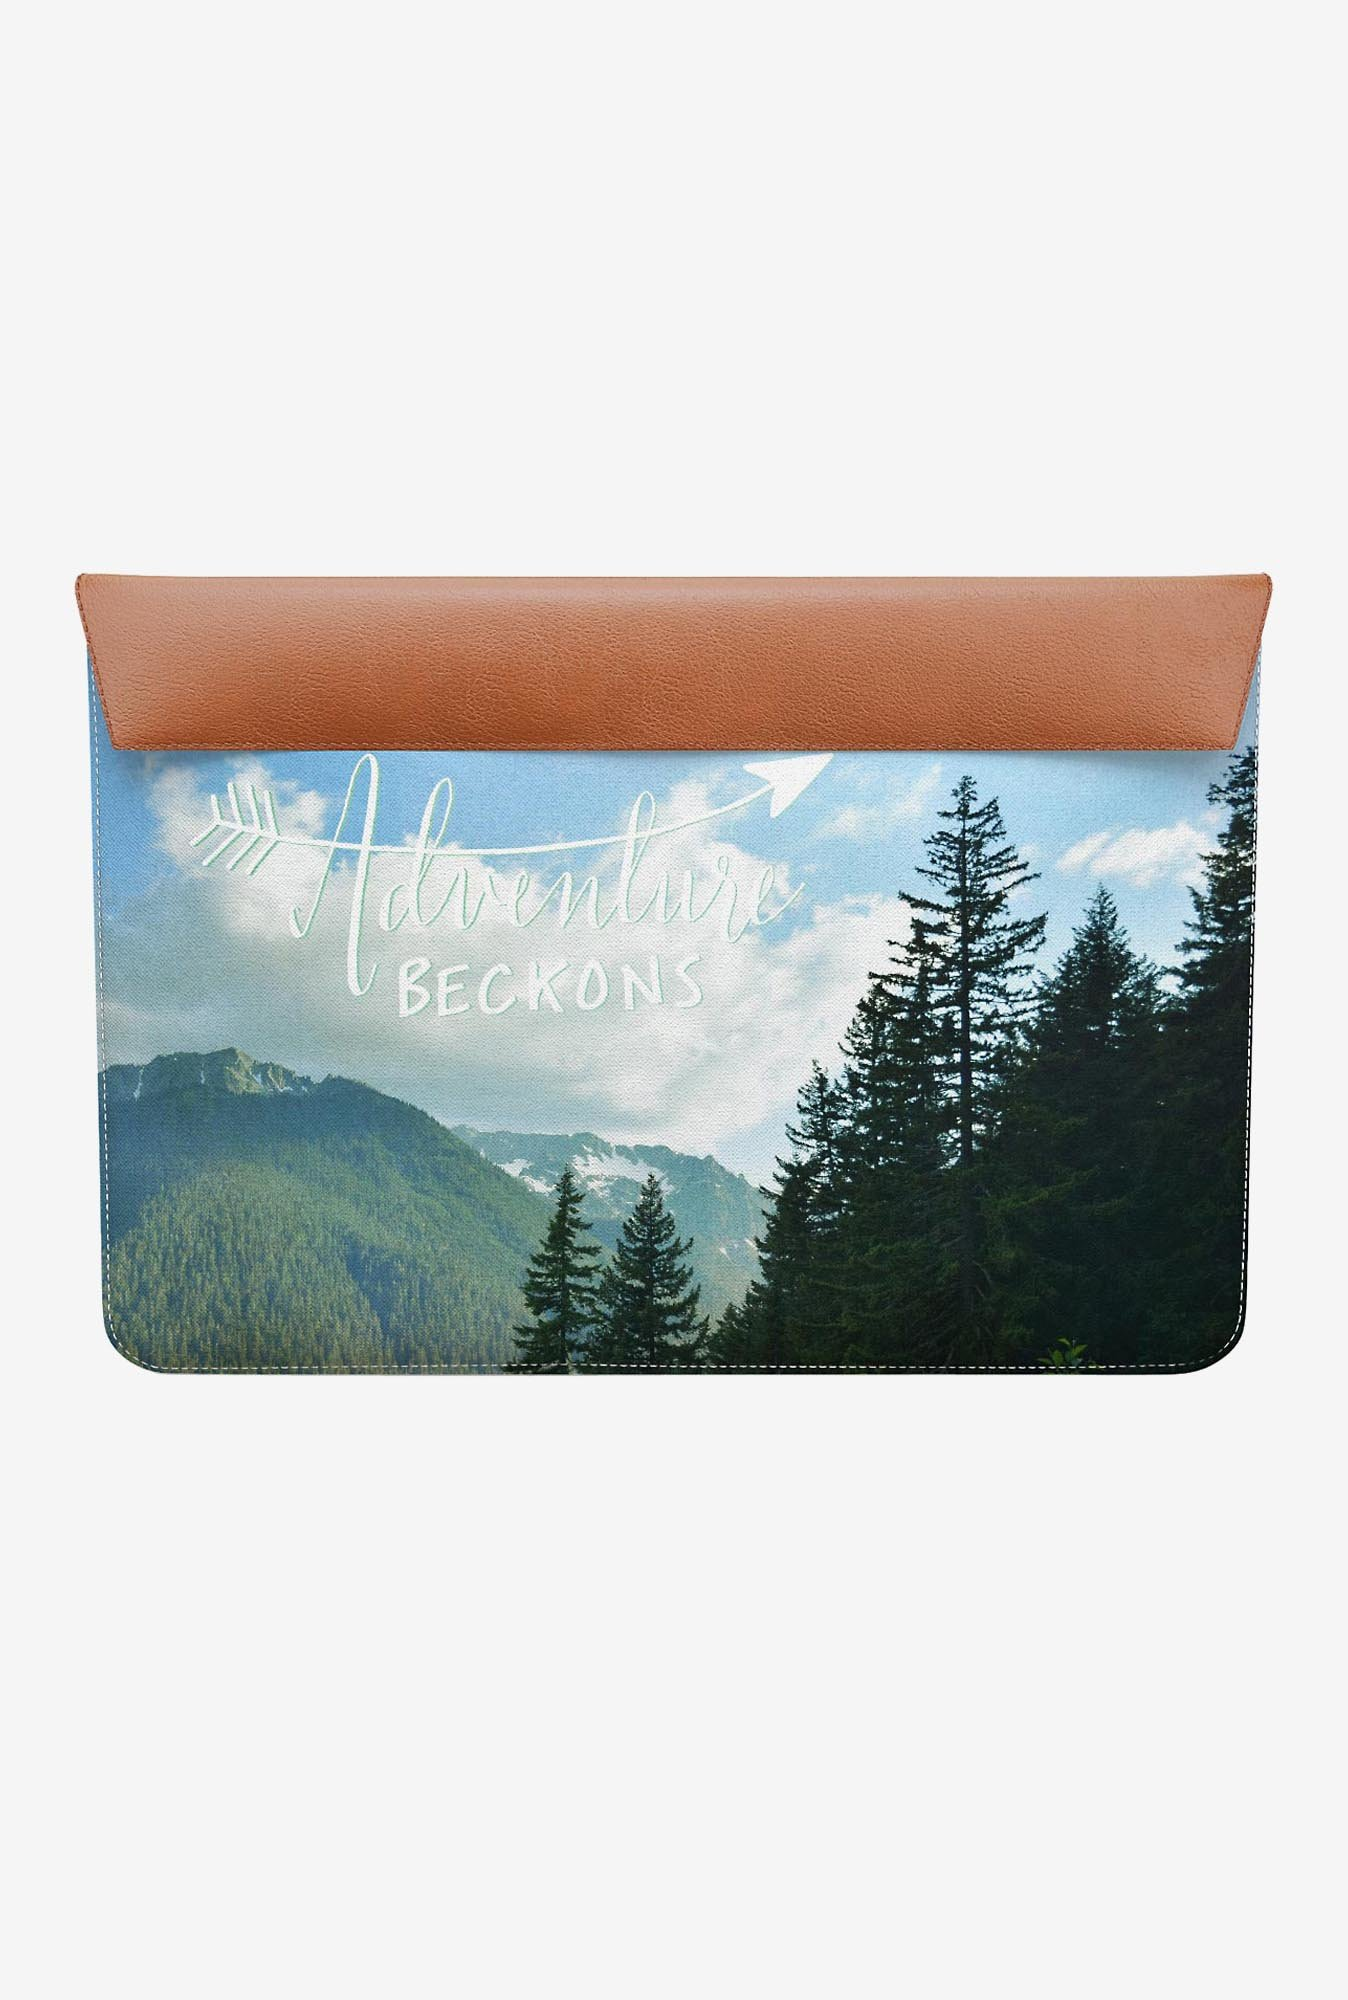 DailyObjects Adventure Beckon MacBook Air 13 Envelope Sleeve